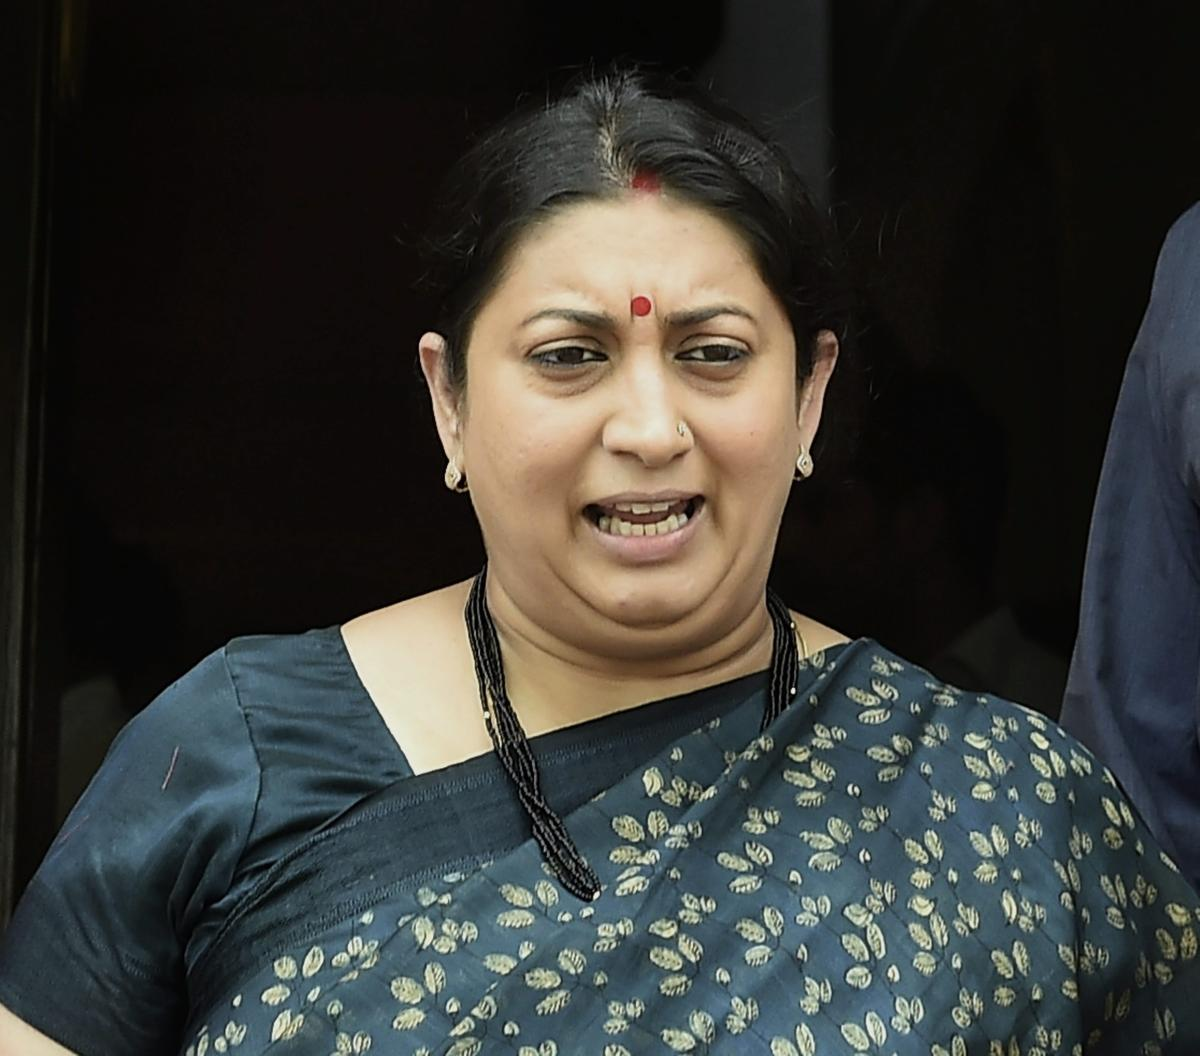 Union Information and Broadcasting Minister Smriti Irani at Parliament House during budget session in New Delhi on Thursday. PTI Photo